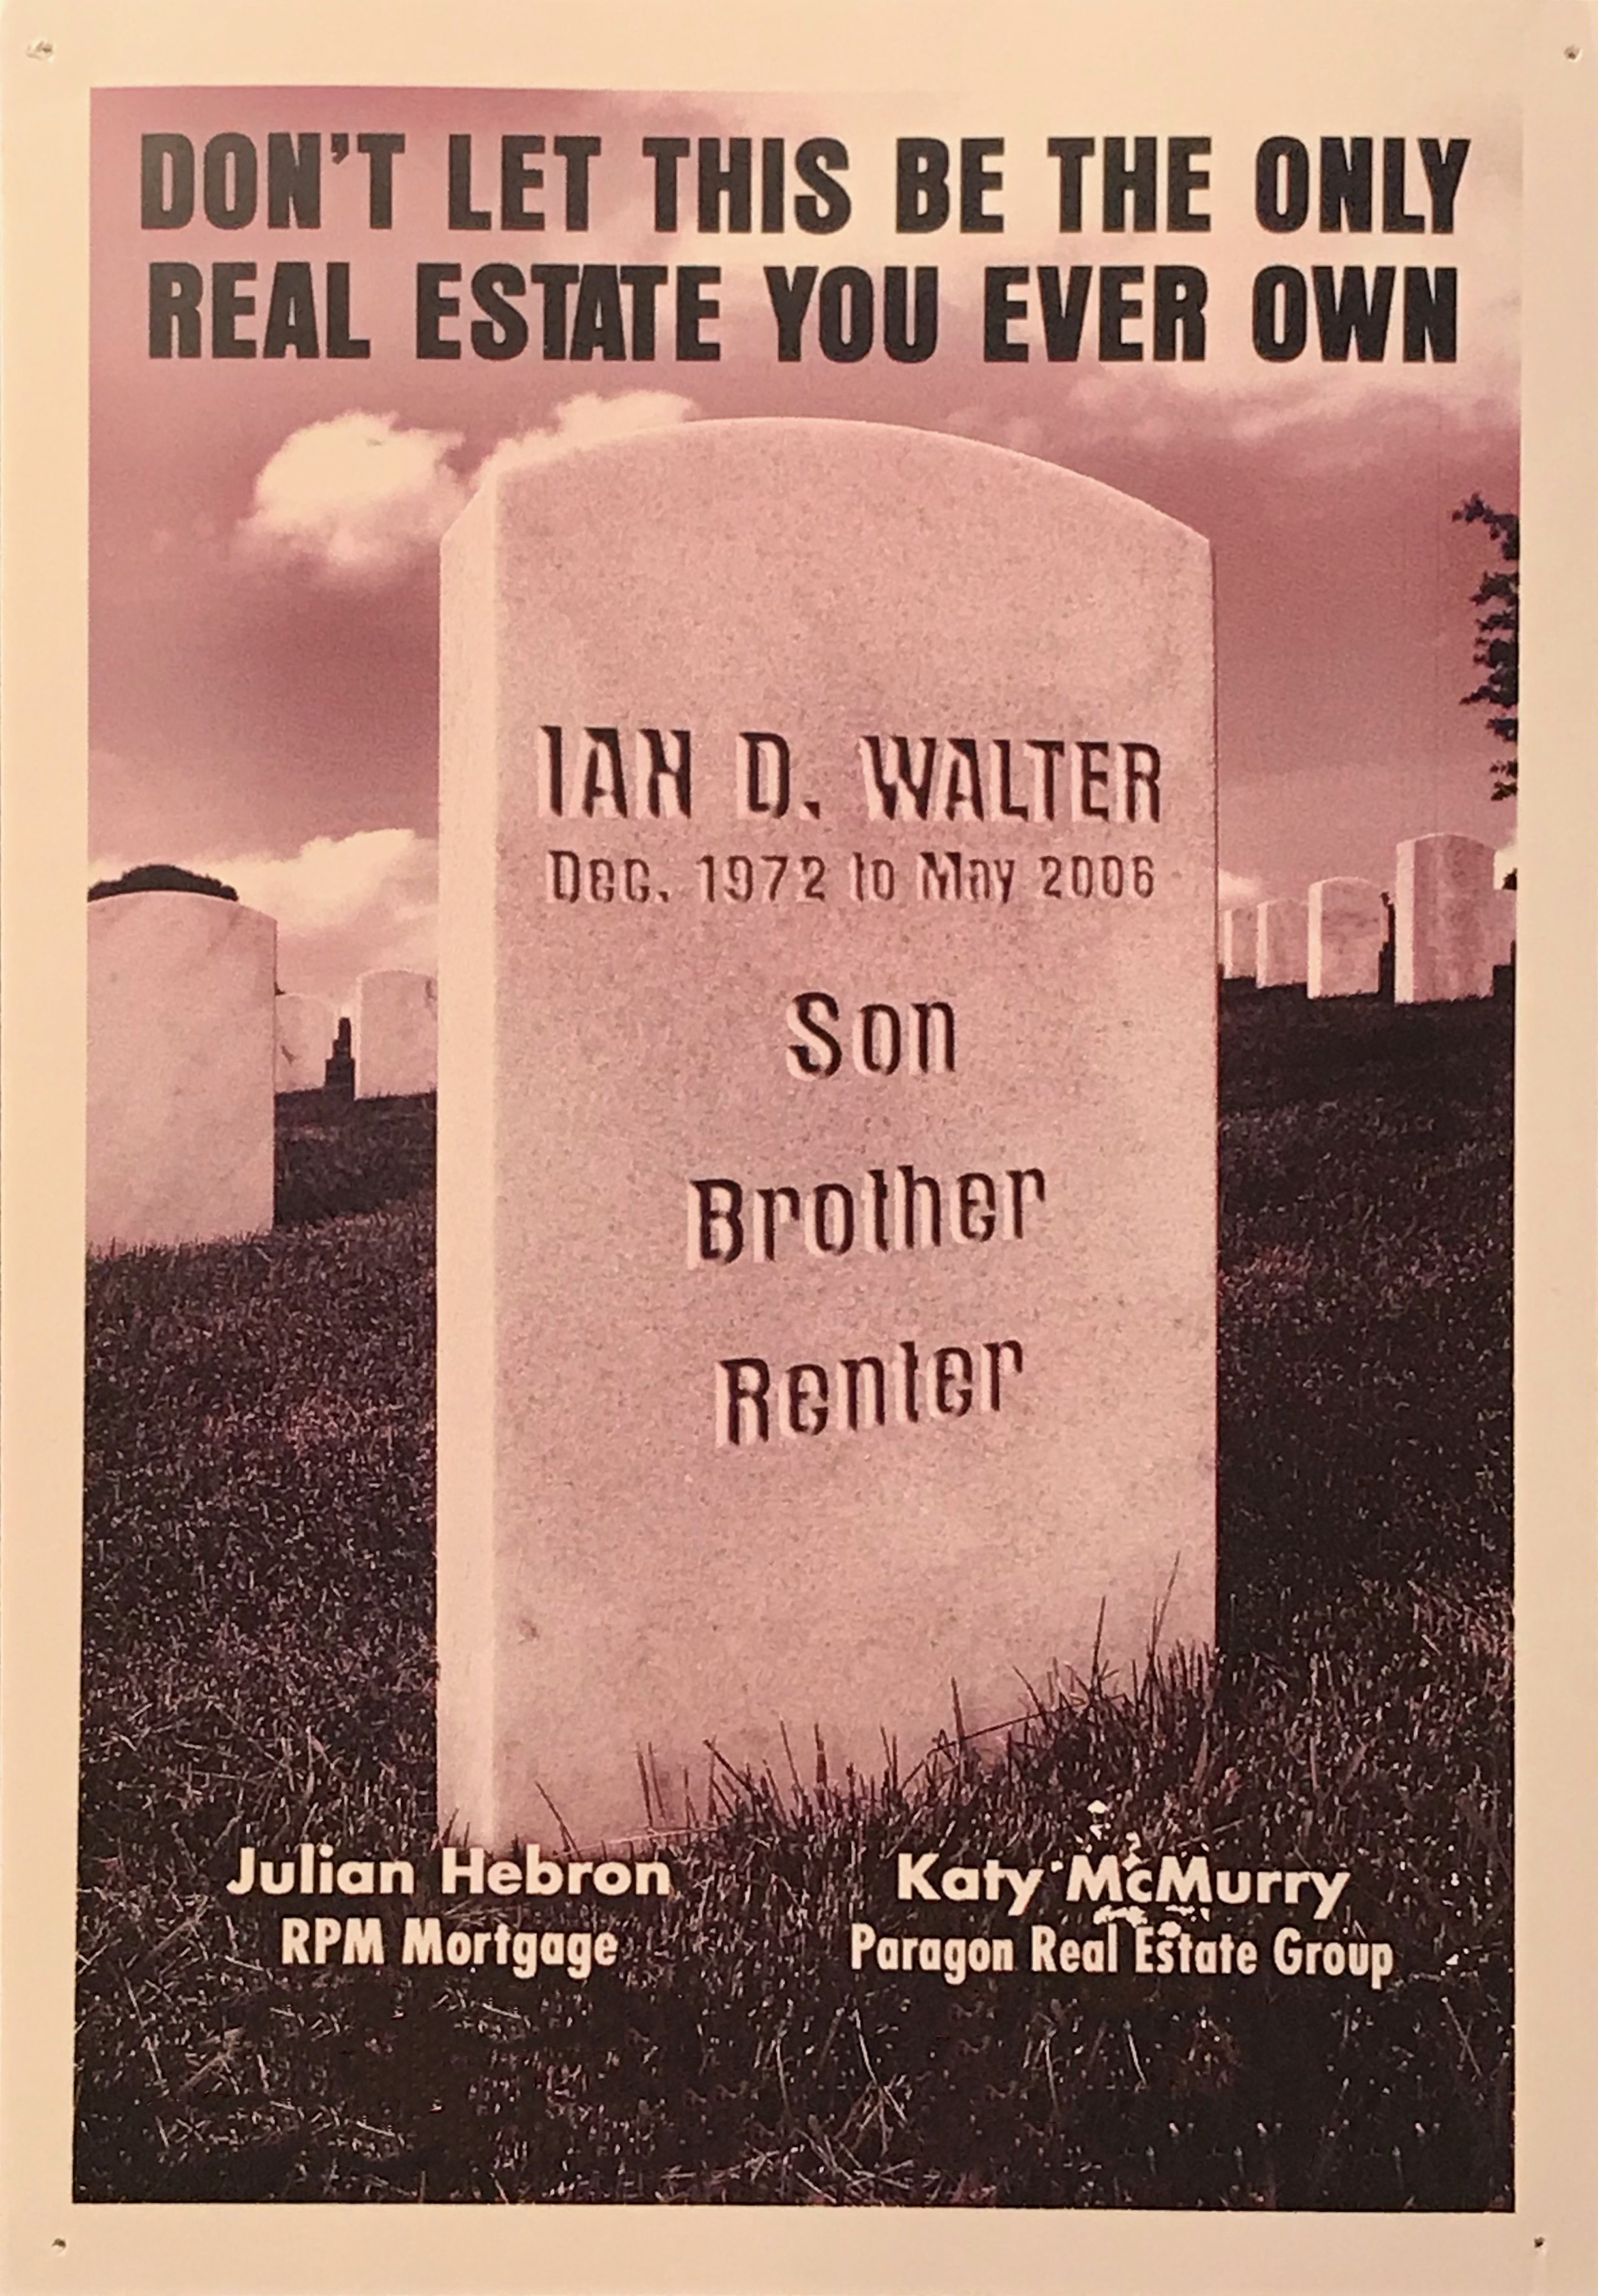 Julian Hebron The Onion Homebuyer Ad Halloween - The Basis Point